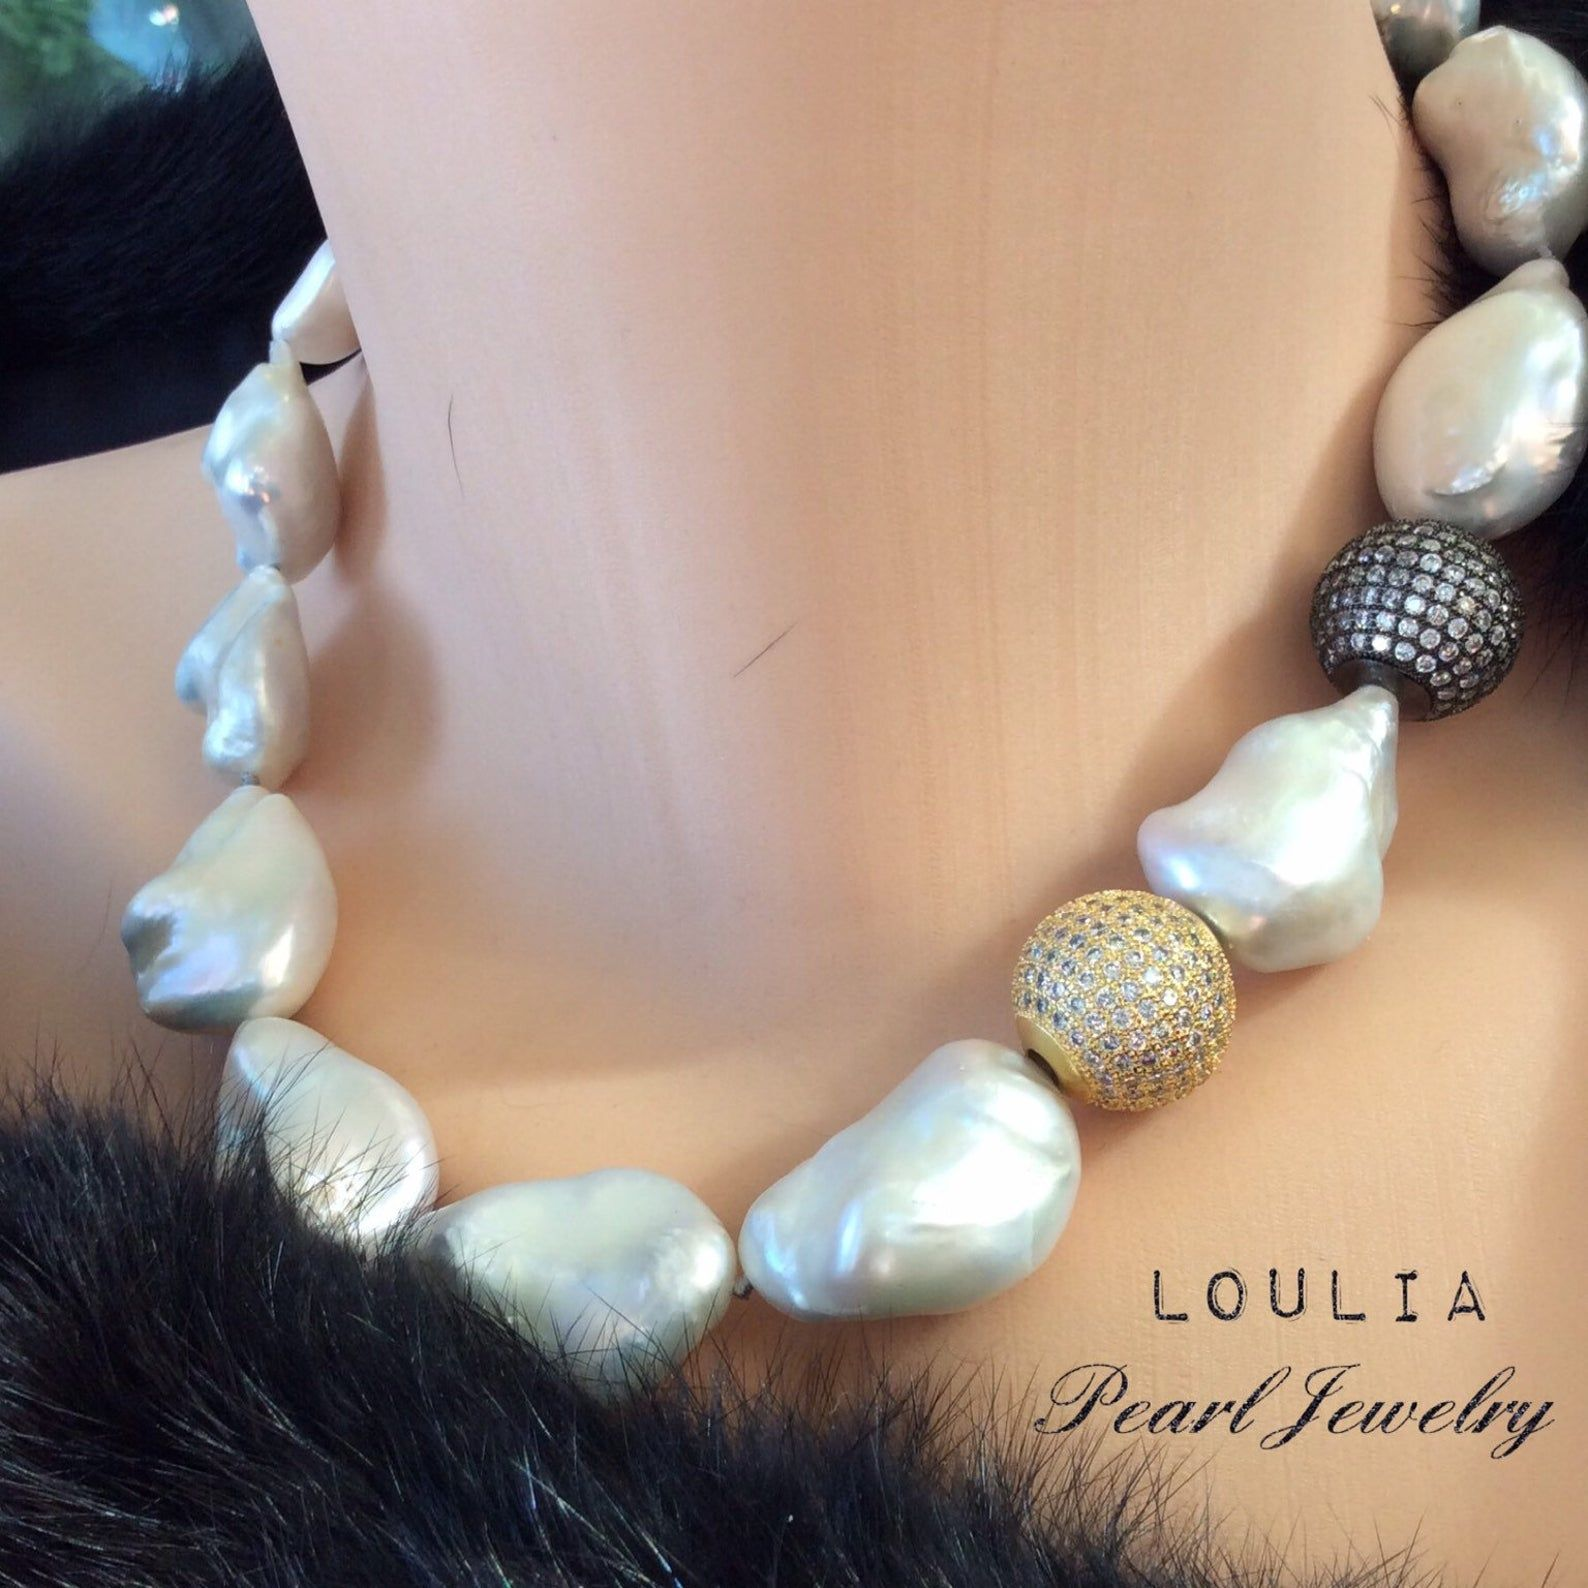 Marvellous Large Baroque Pearl Necklace Bridal Jewelry White Baroque Pearls Bridal Jewelry Wedding Necklace Cz Paved Spacers Pearl Bridal Jewelry Bridal Jewelry Bridesmaid Necklace